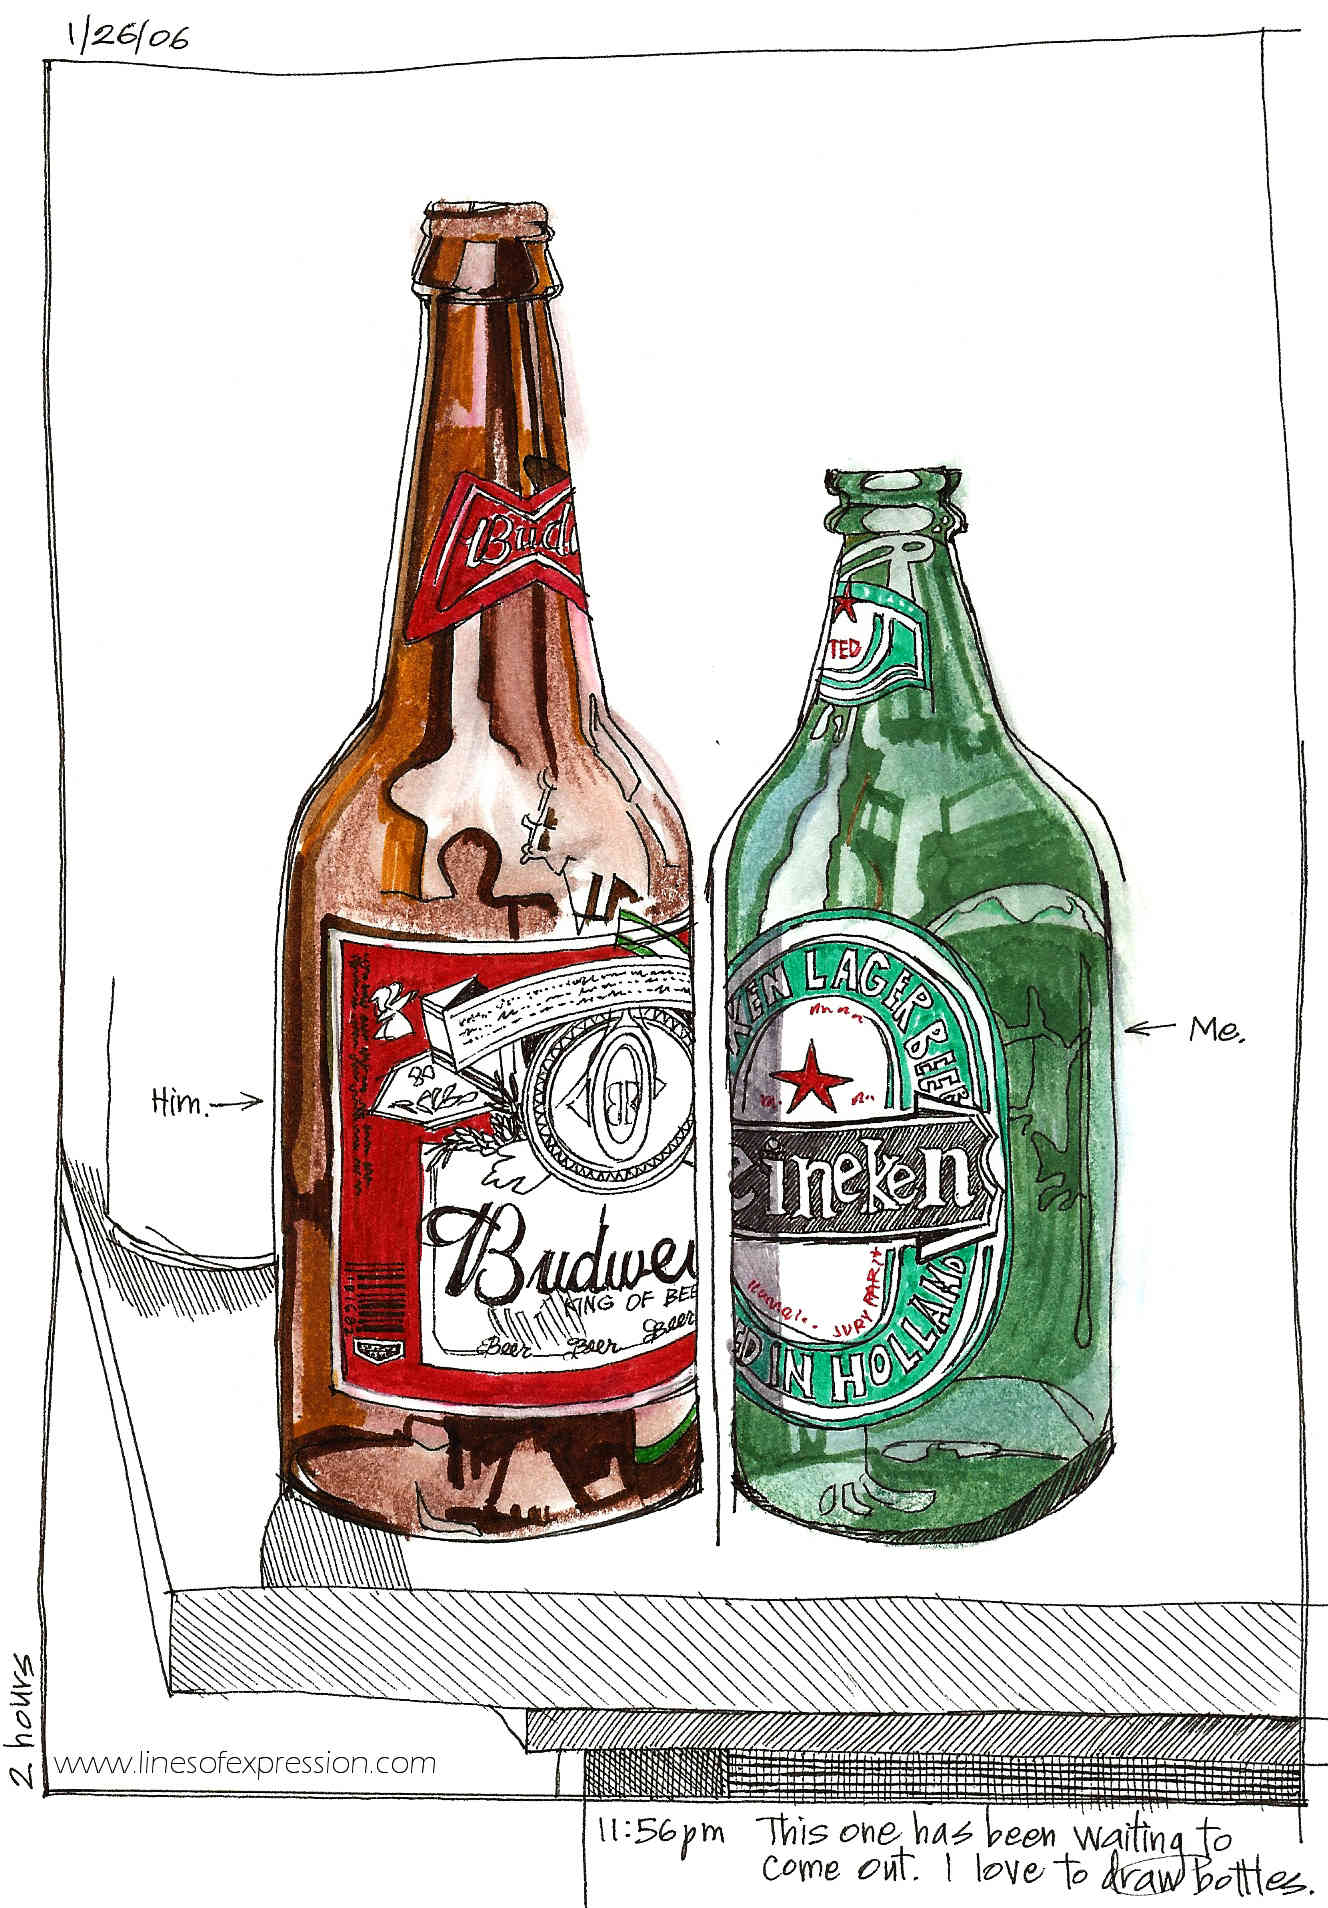 Ink and watercolor still life by Rebecca Payne. A sketchbook drawing of beer bottles inspired by Danny Gregory's book The Creative License.